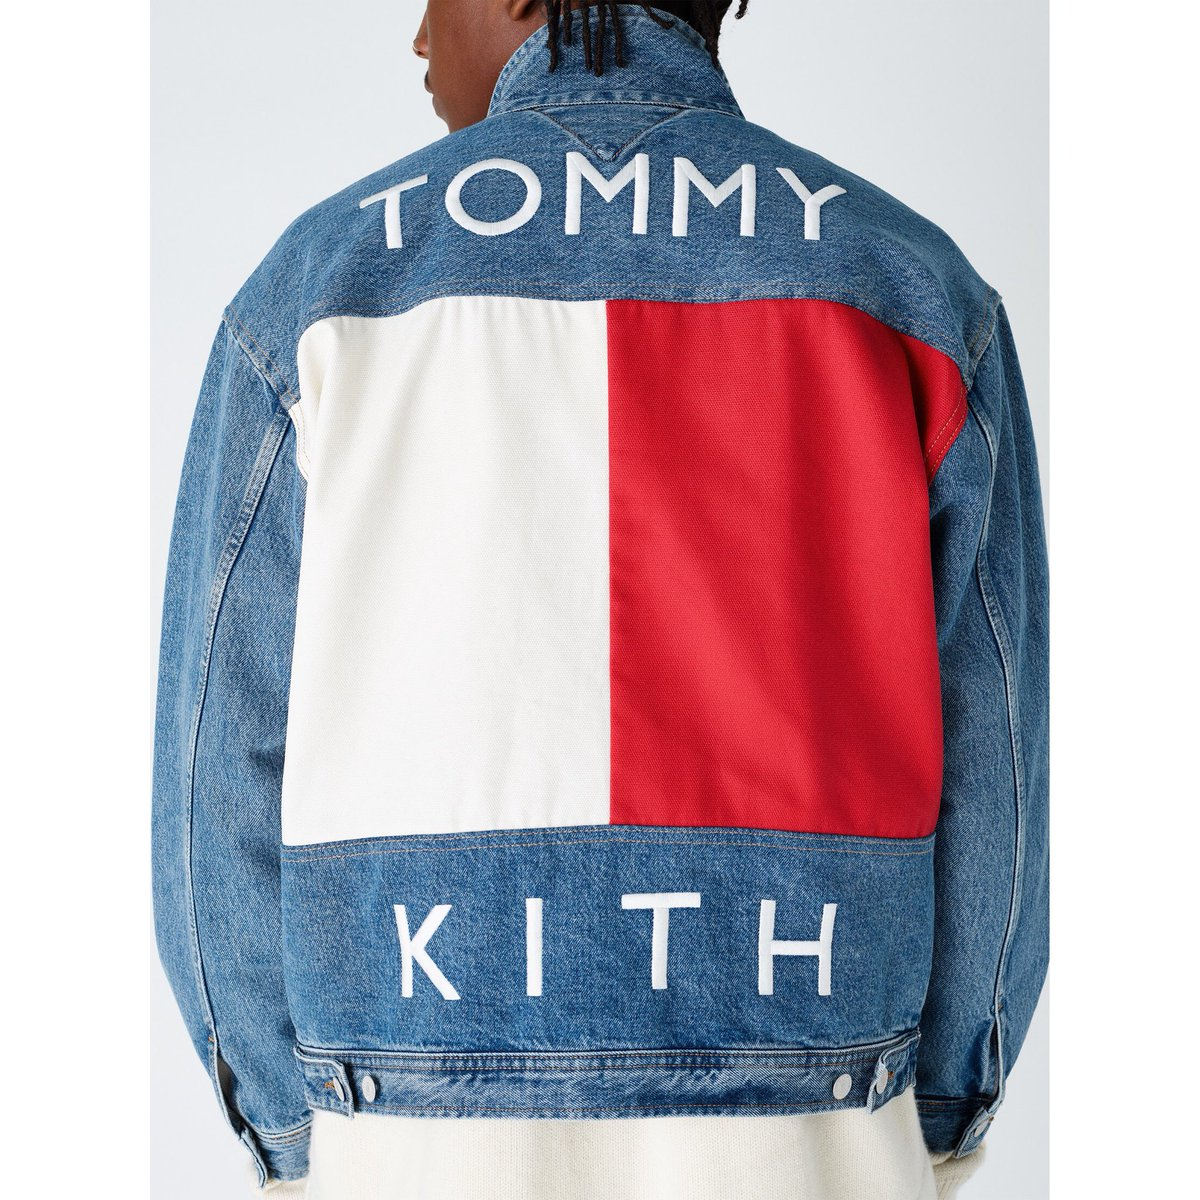 25264c69 ... at all Kith shops and at 11AM EST on http://Kith.com . https://kith .com/blogs/lookbooks/kith-x-tommy-hilfiger-fw18-lookbook  …pic.twitter.com/6tPIHb9KsC